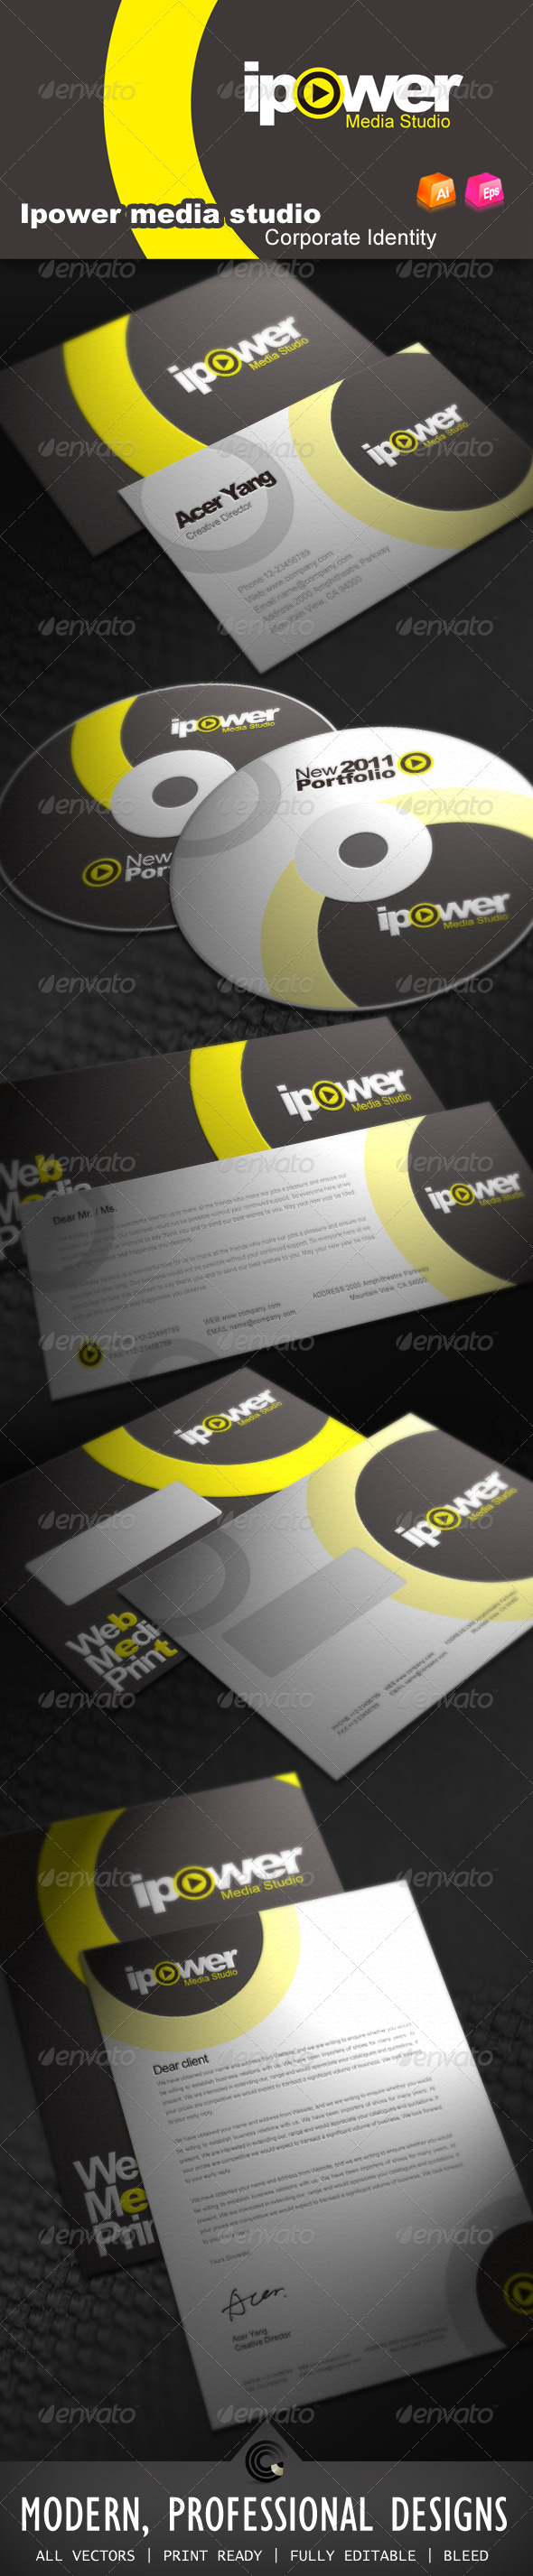 Ipower Midea Studio Corporate Identity